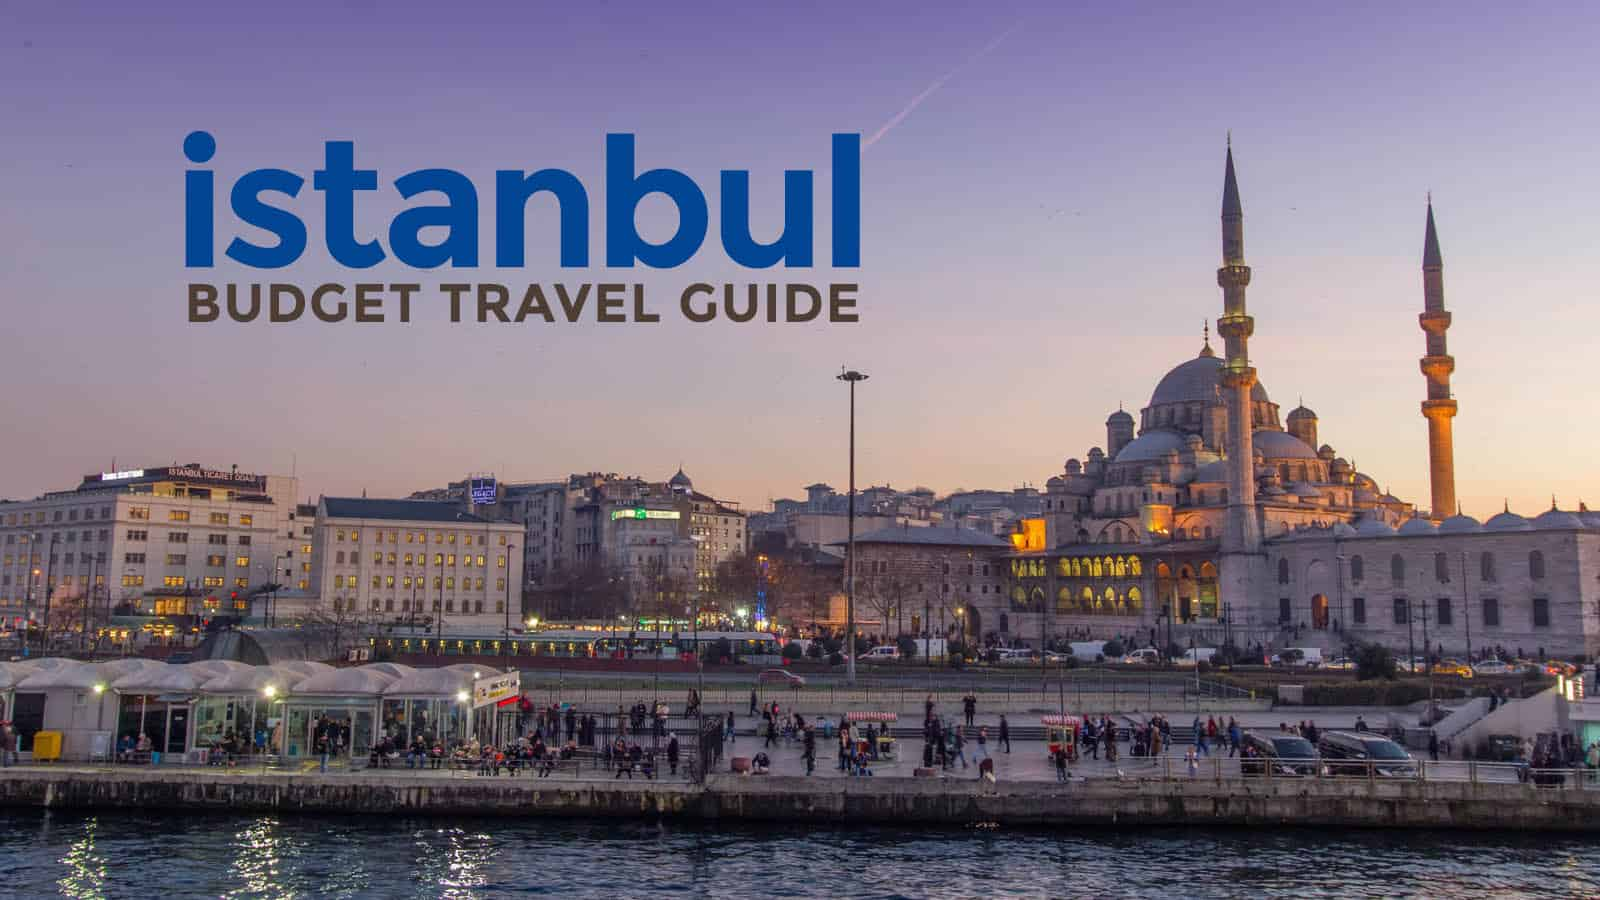 istanbul on a budget 2018 travel guide itinerary the poor traveler itinerary blog. Black Bedroom Furniture Sets. Home Design Ideas